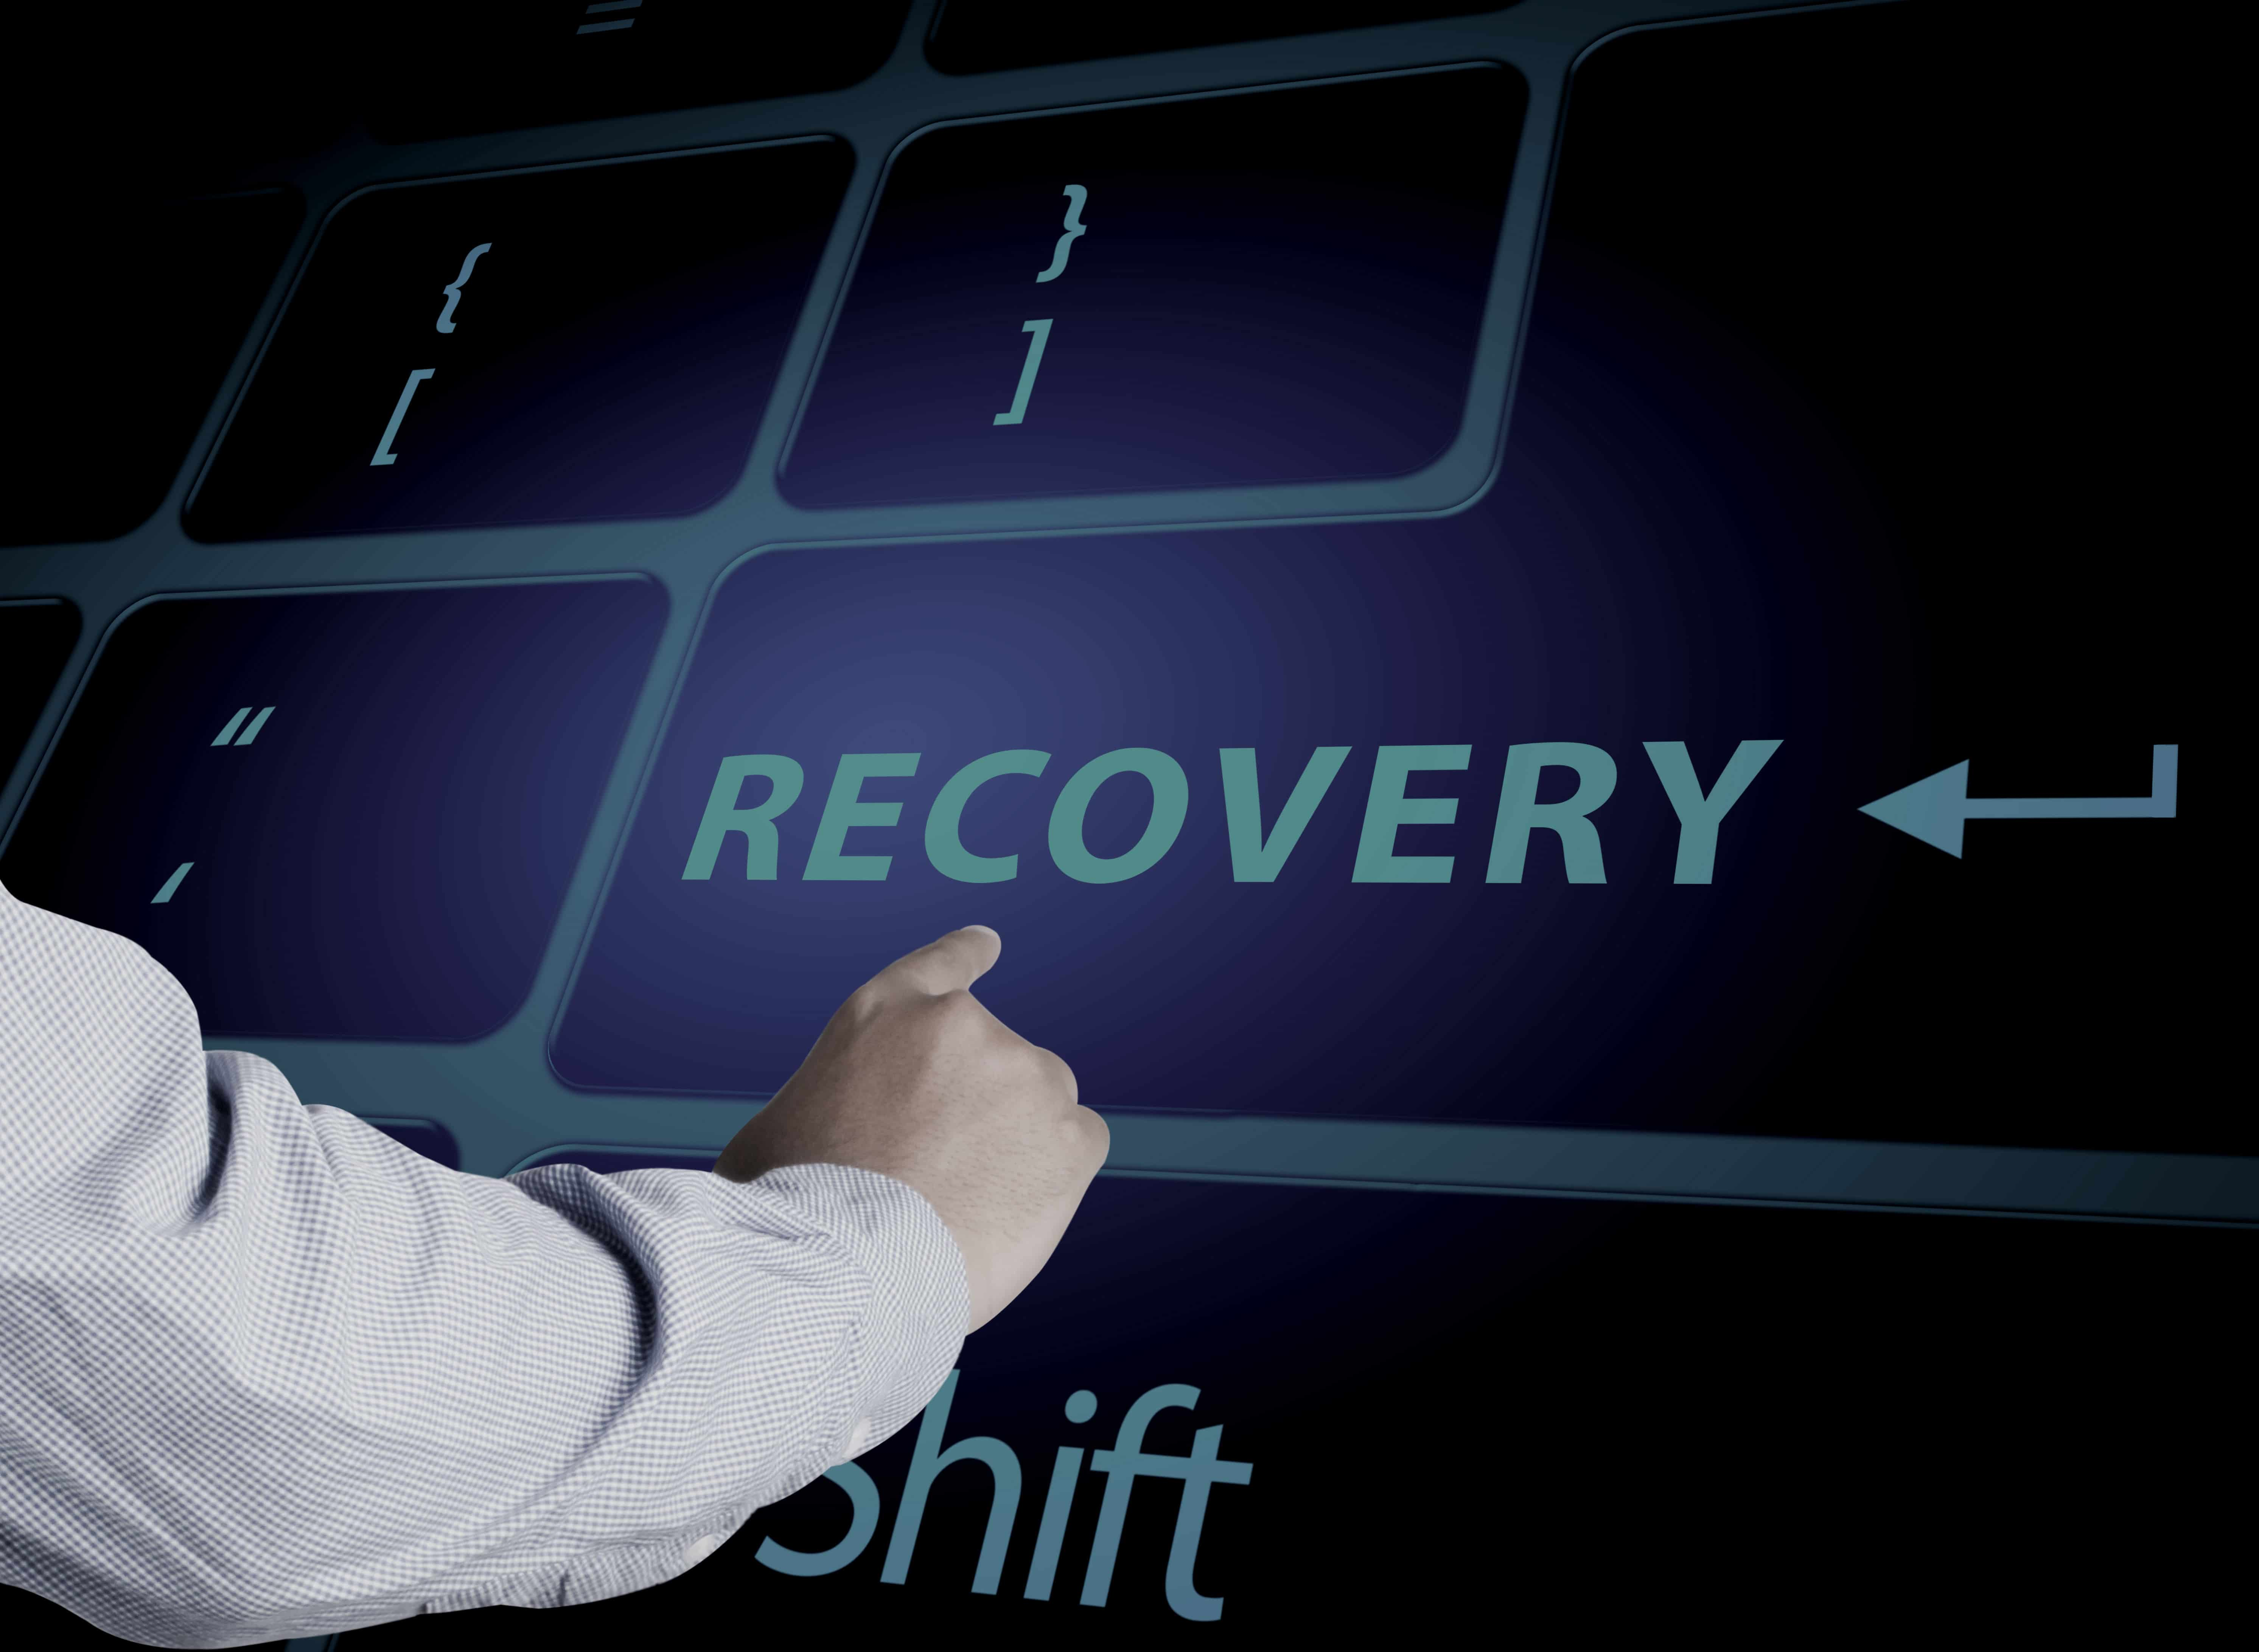 Networking Recovery Solution via CPS Technology